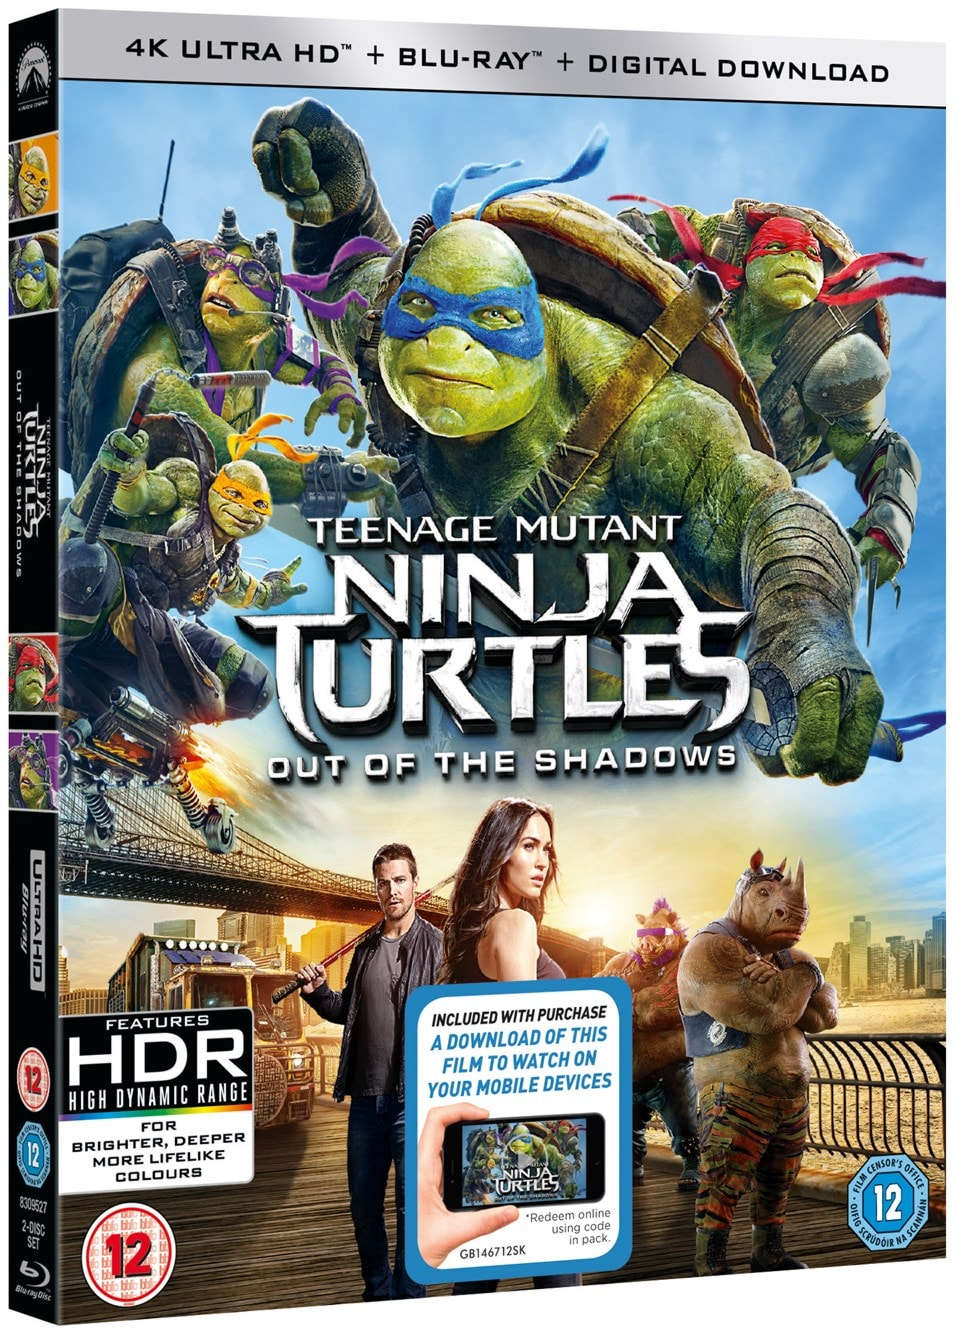 Teenage Mutant Ninja Turtles: Out of the Shadows - 2